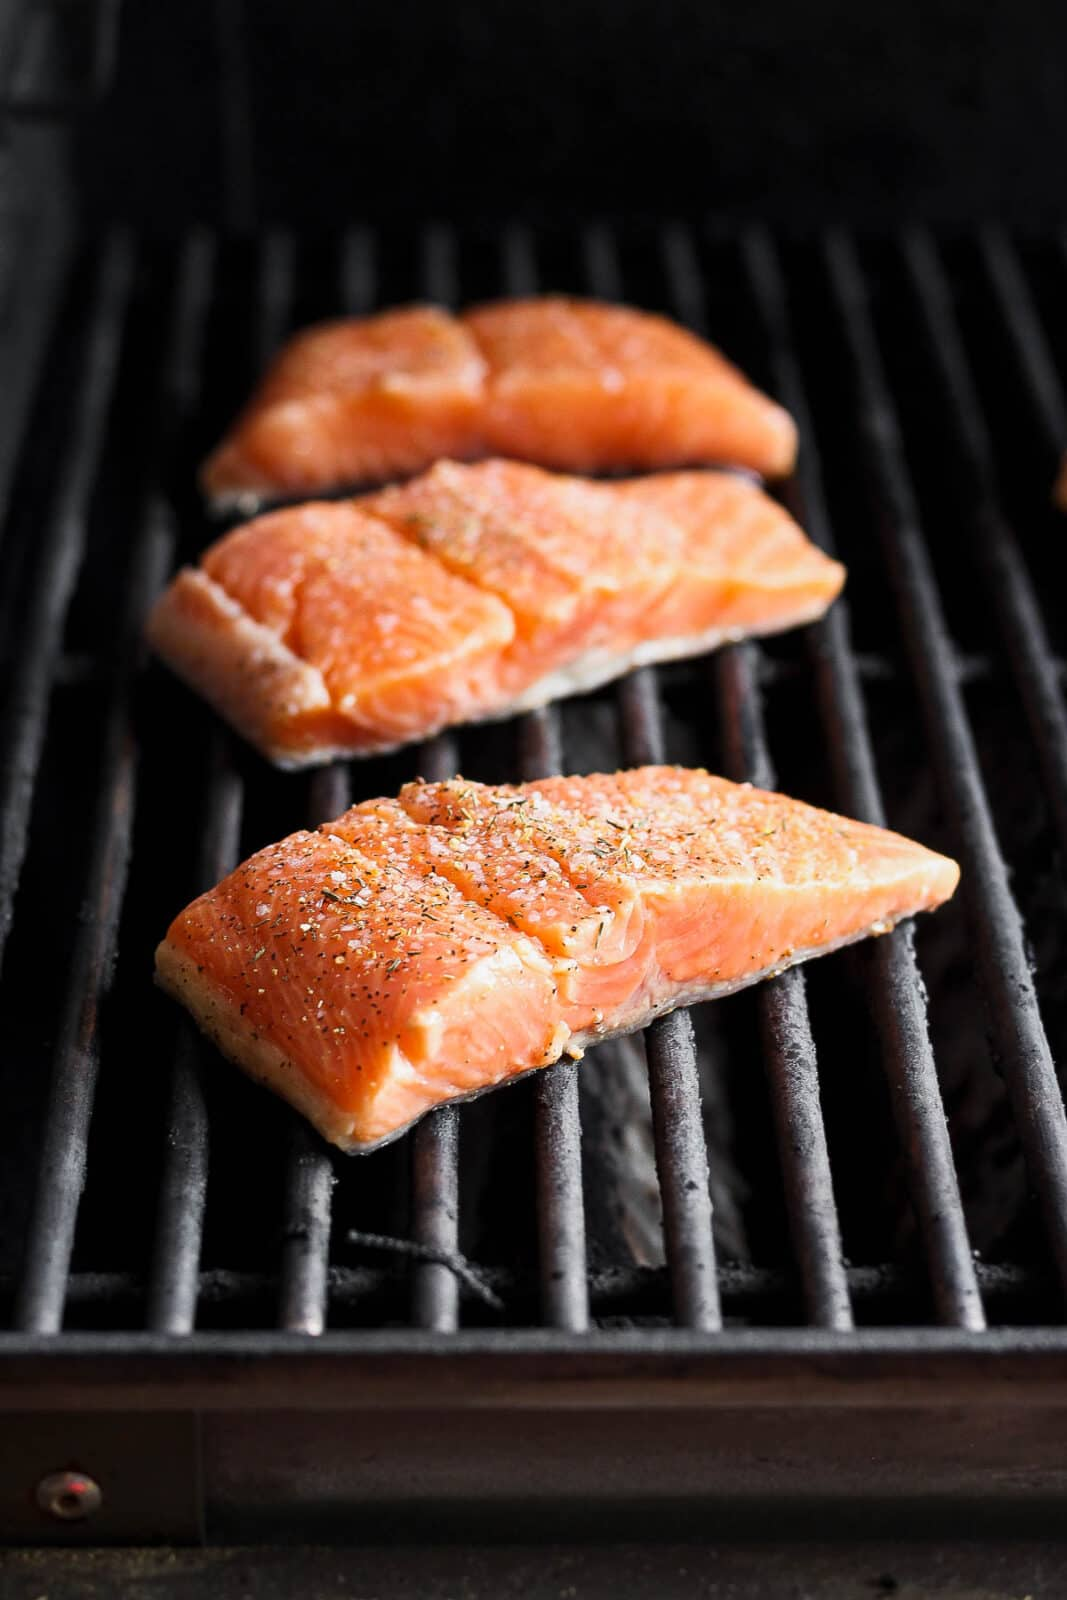 Salmon fillets on the grill.